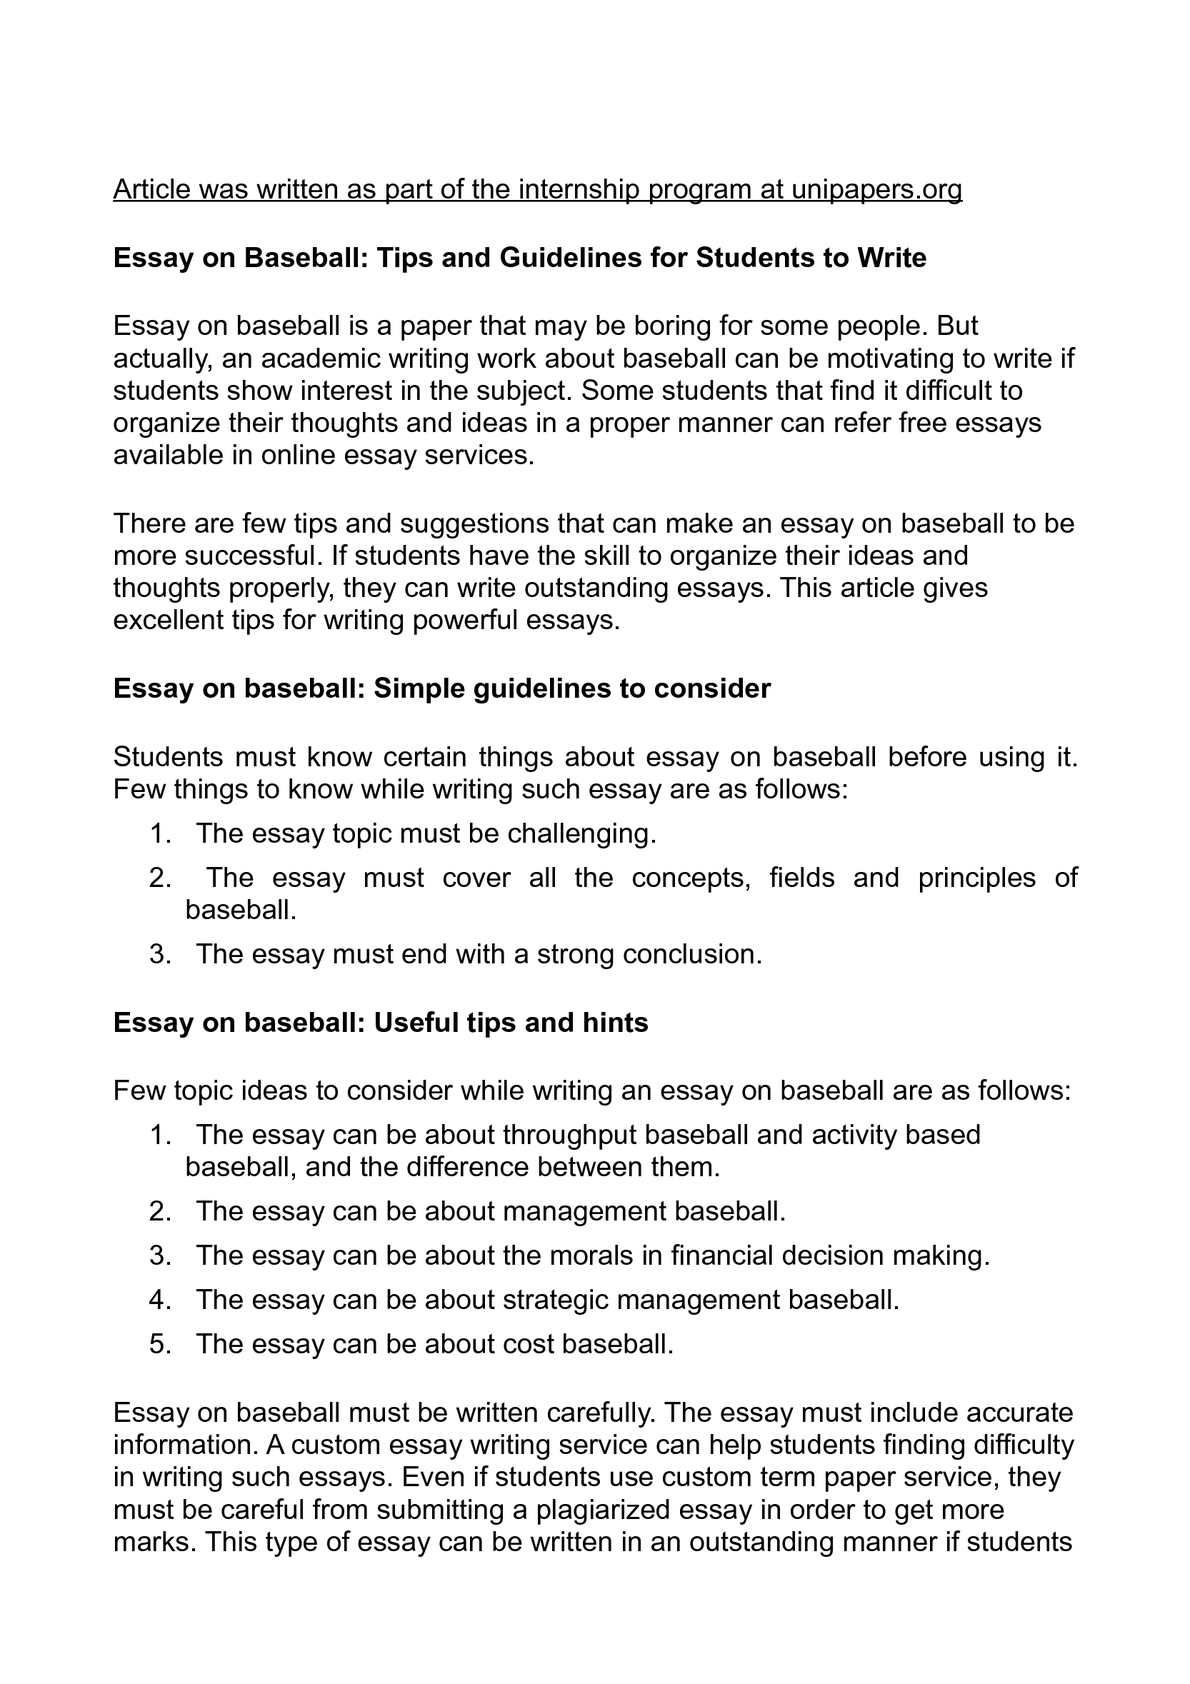 essay on baseball tips and guidelines for students to write